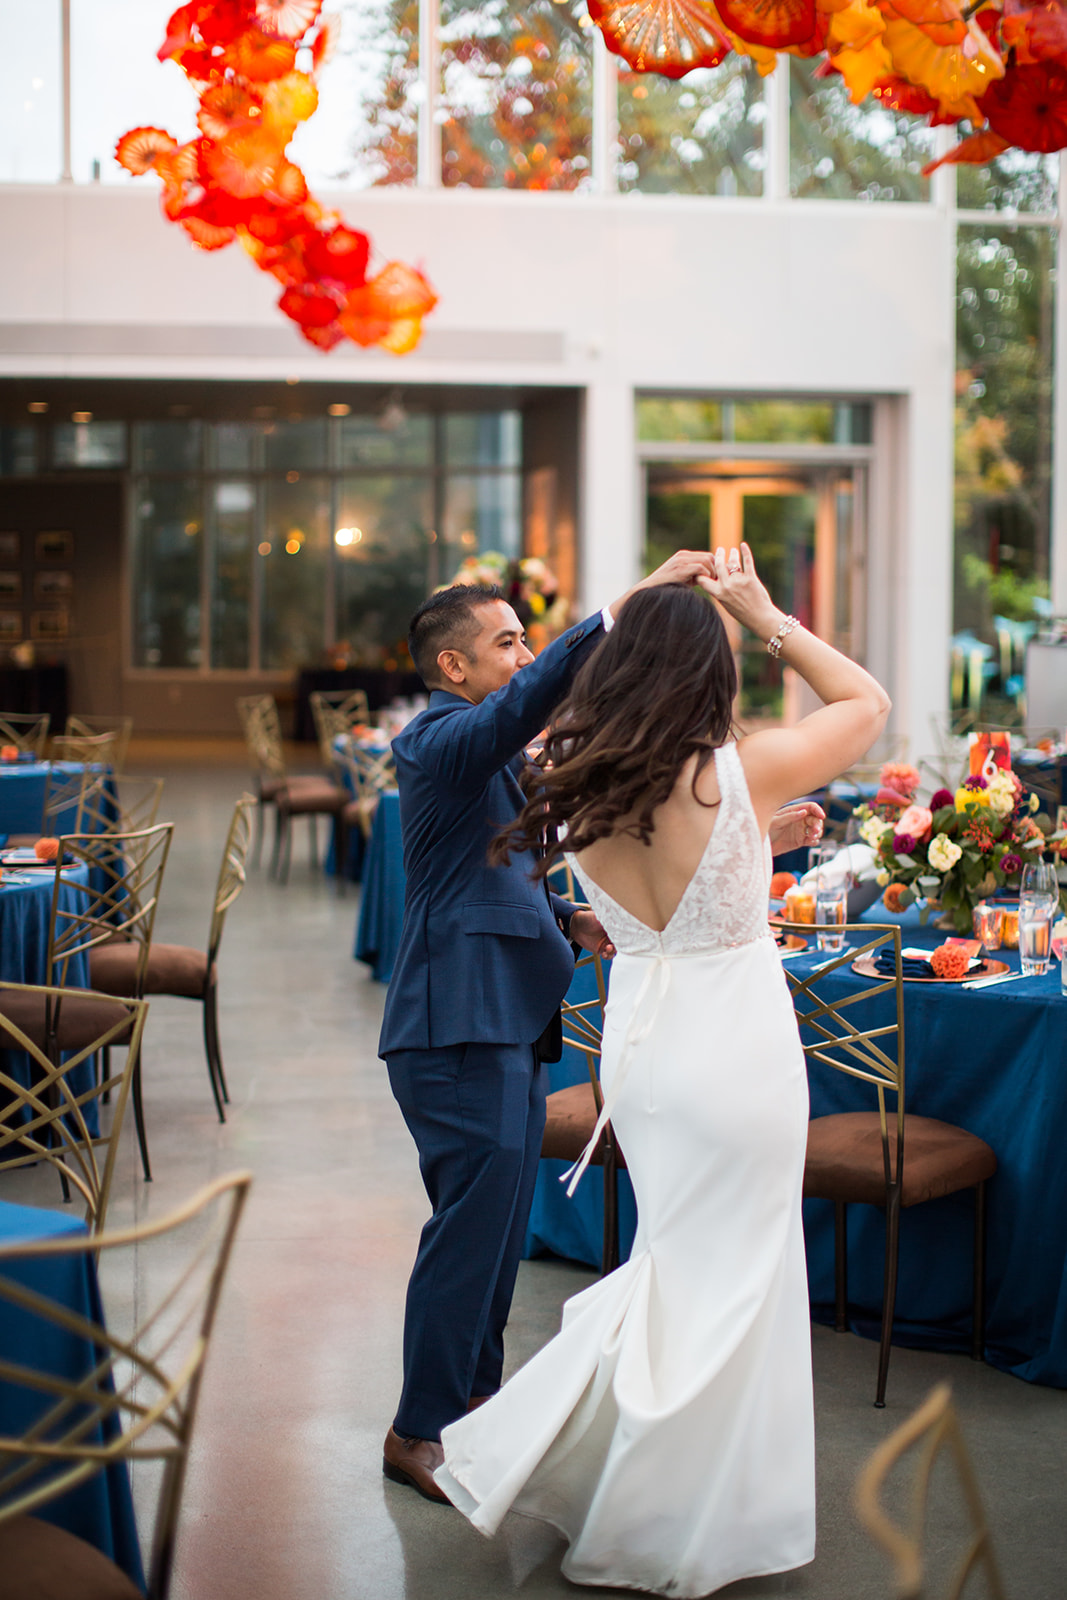 Bride and groom dancing around their reception tables at a fall Chihuly wedding